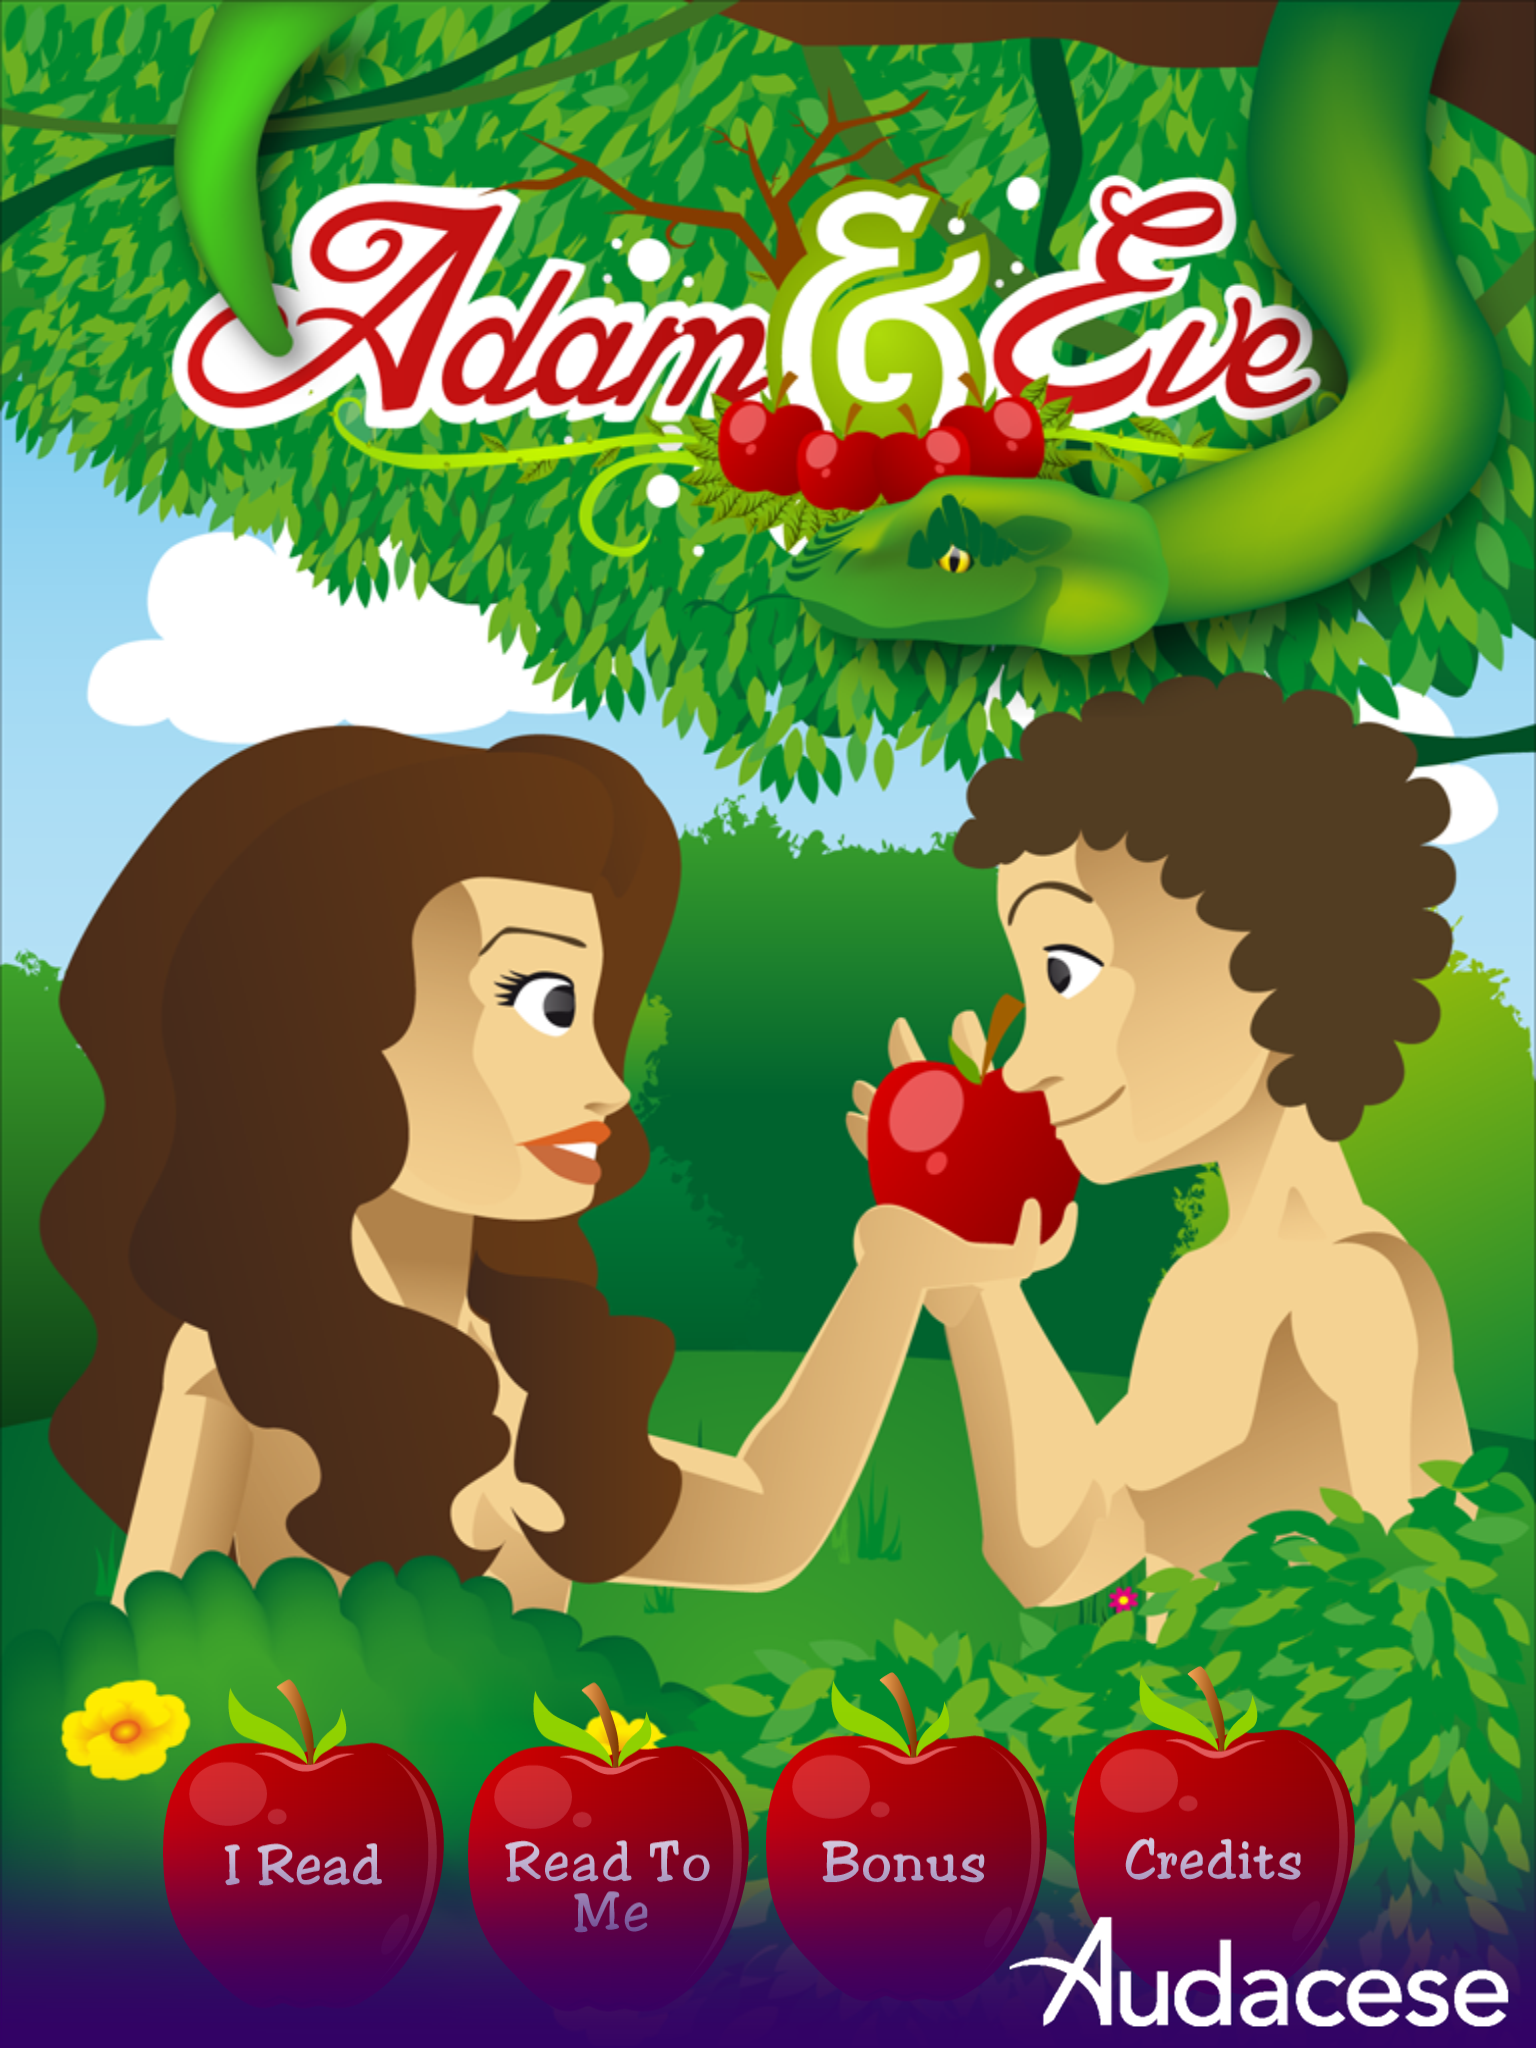 share the story of adam and eve with your family brought to life